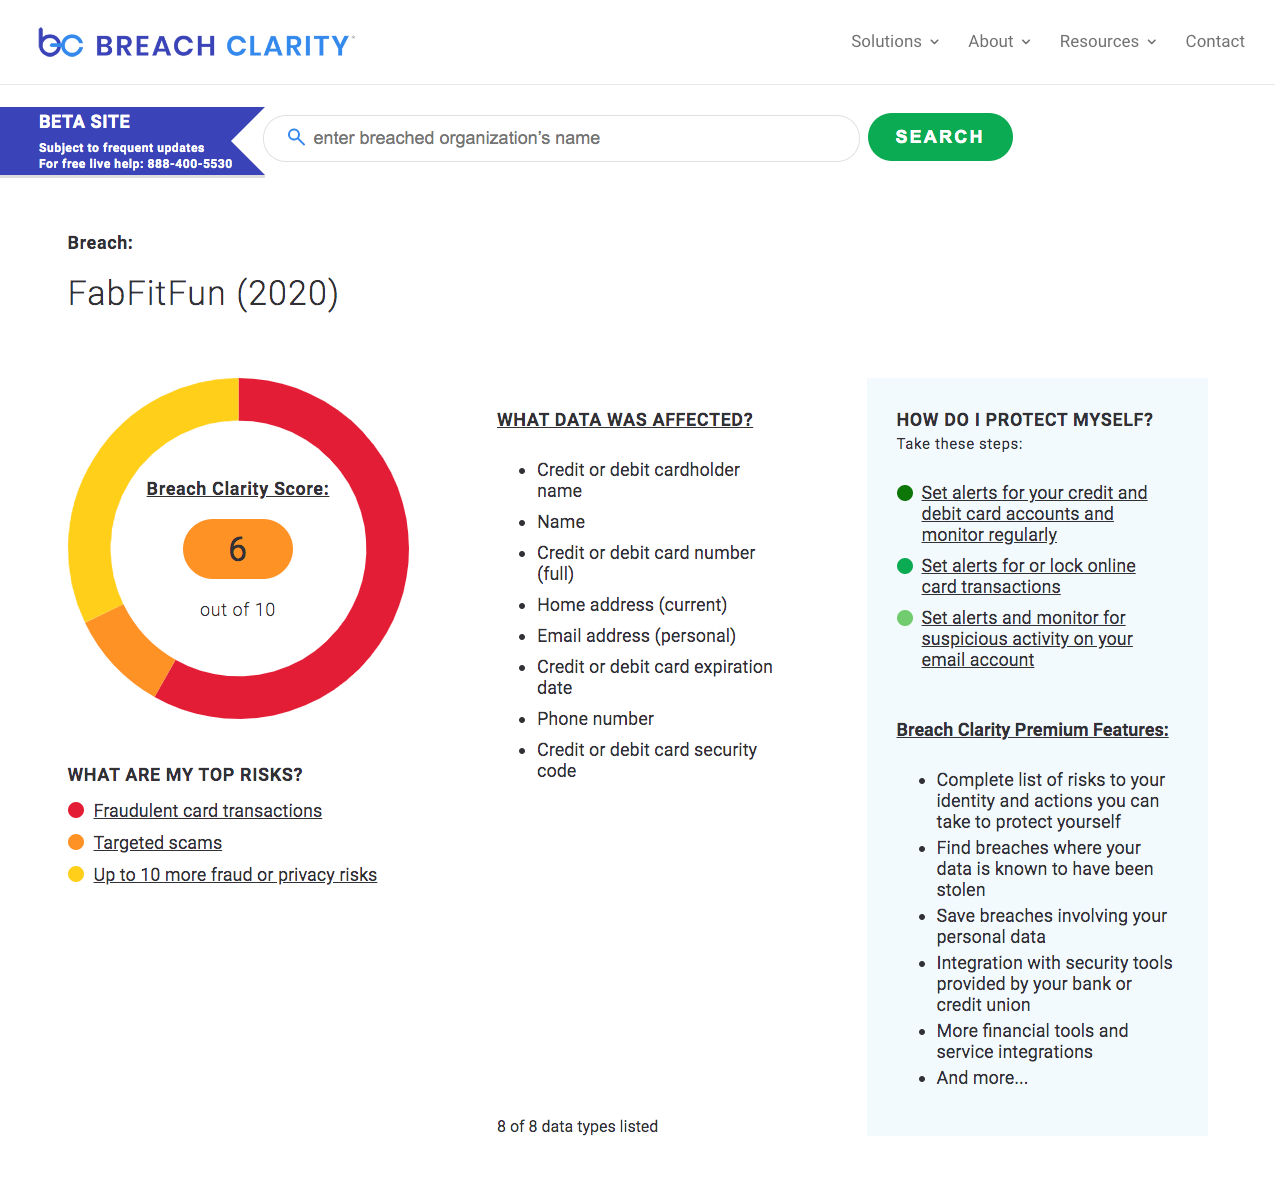 FabFitFun Breach Clarity Score